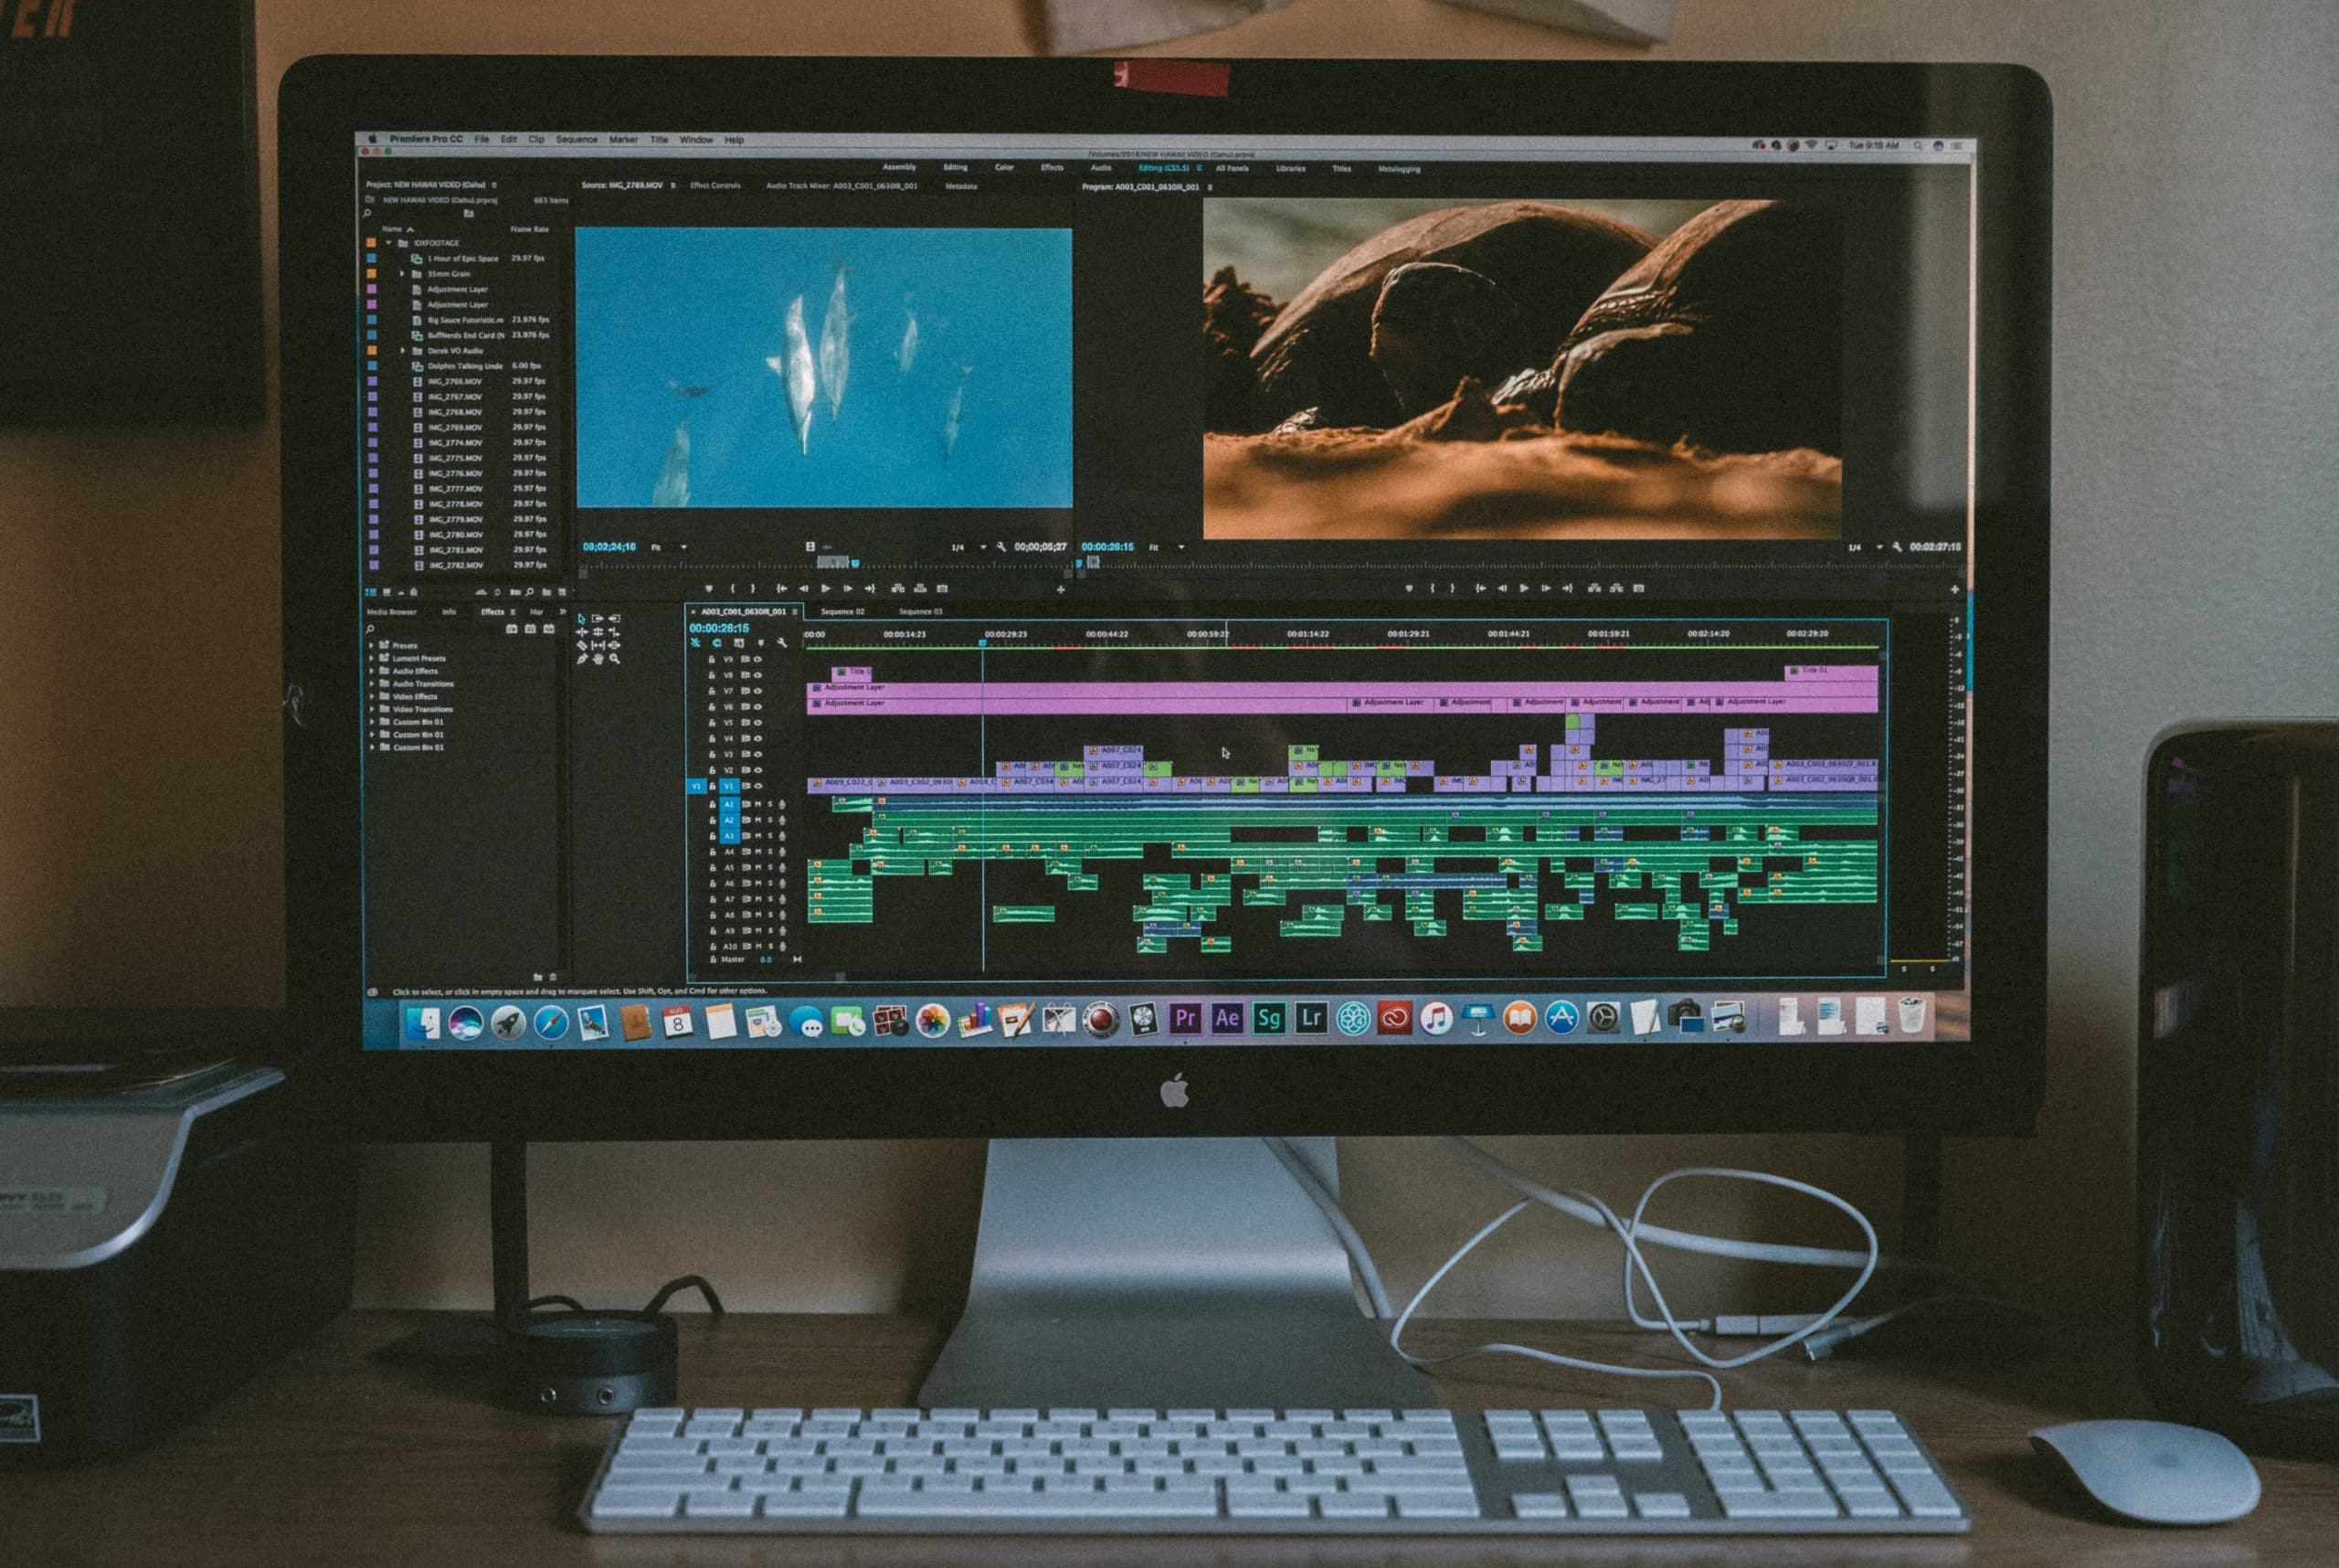 How to prepare a professional video resume - An image of a Mac computer